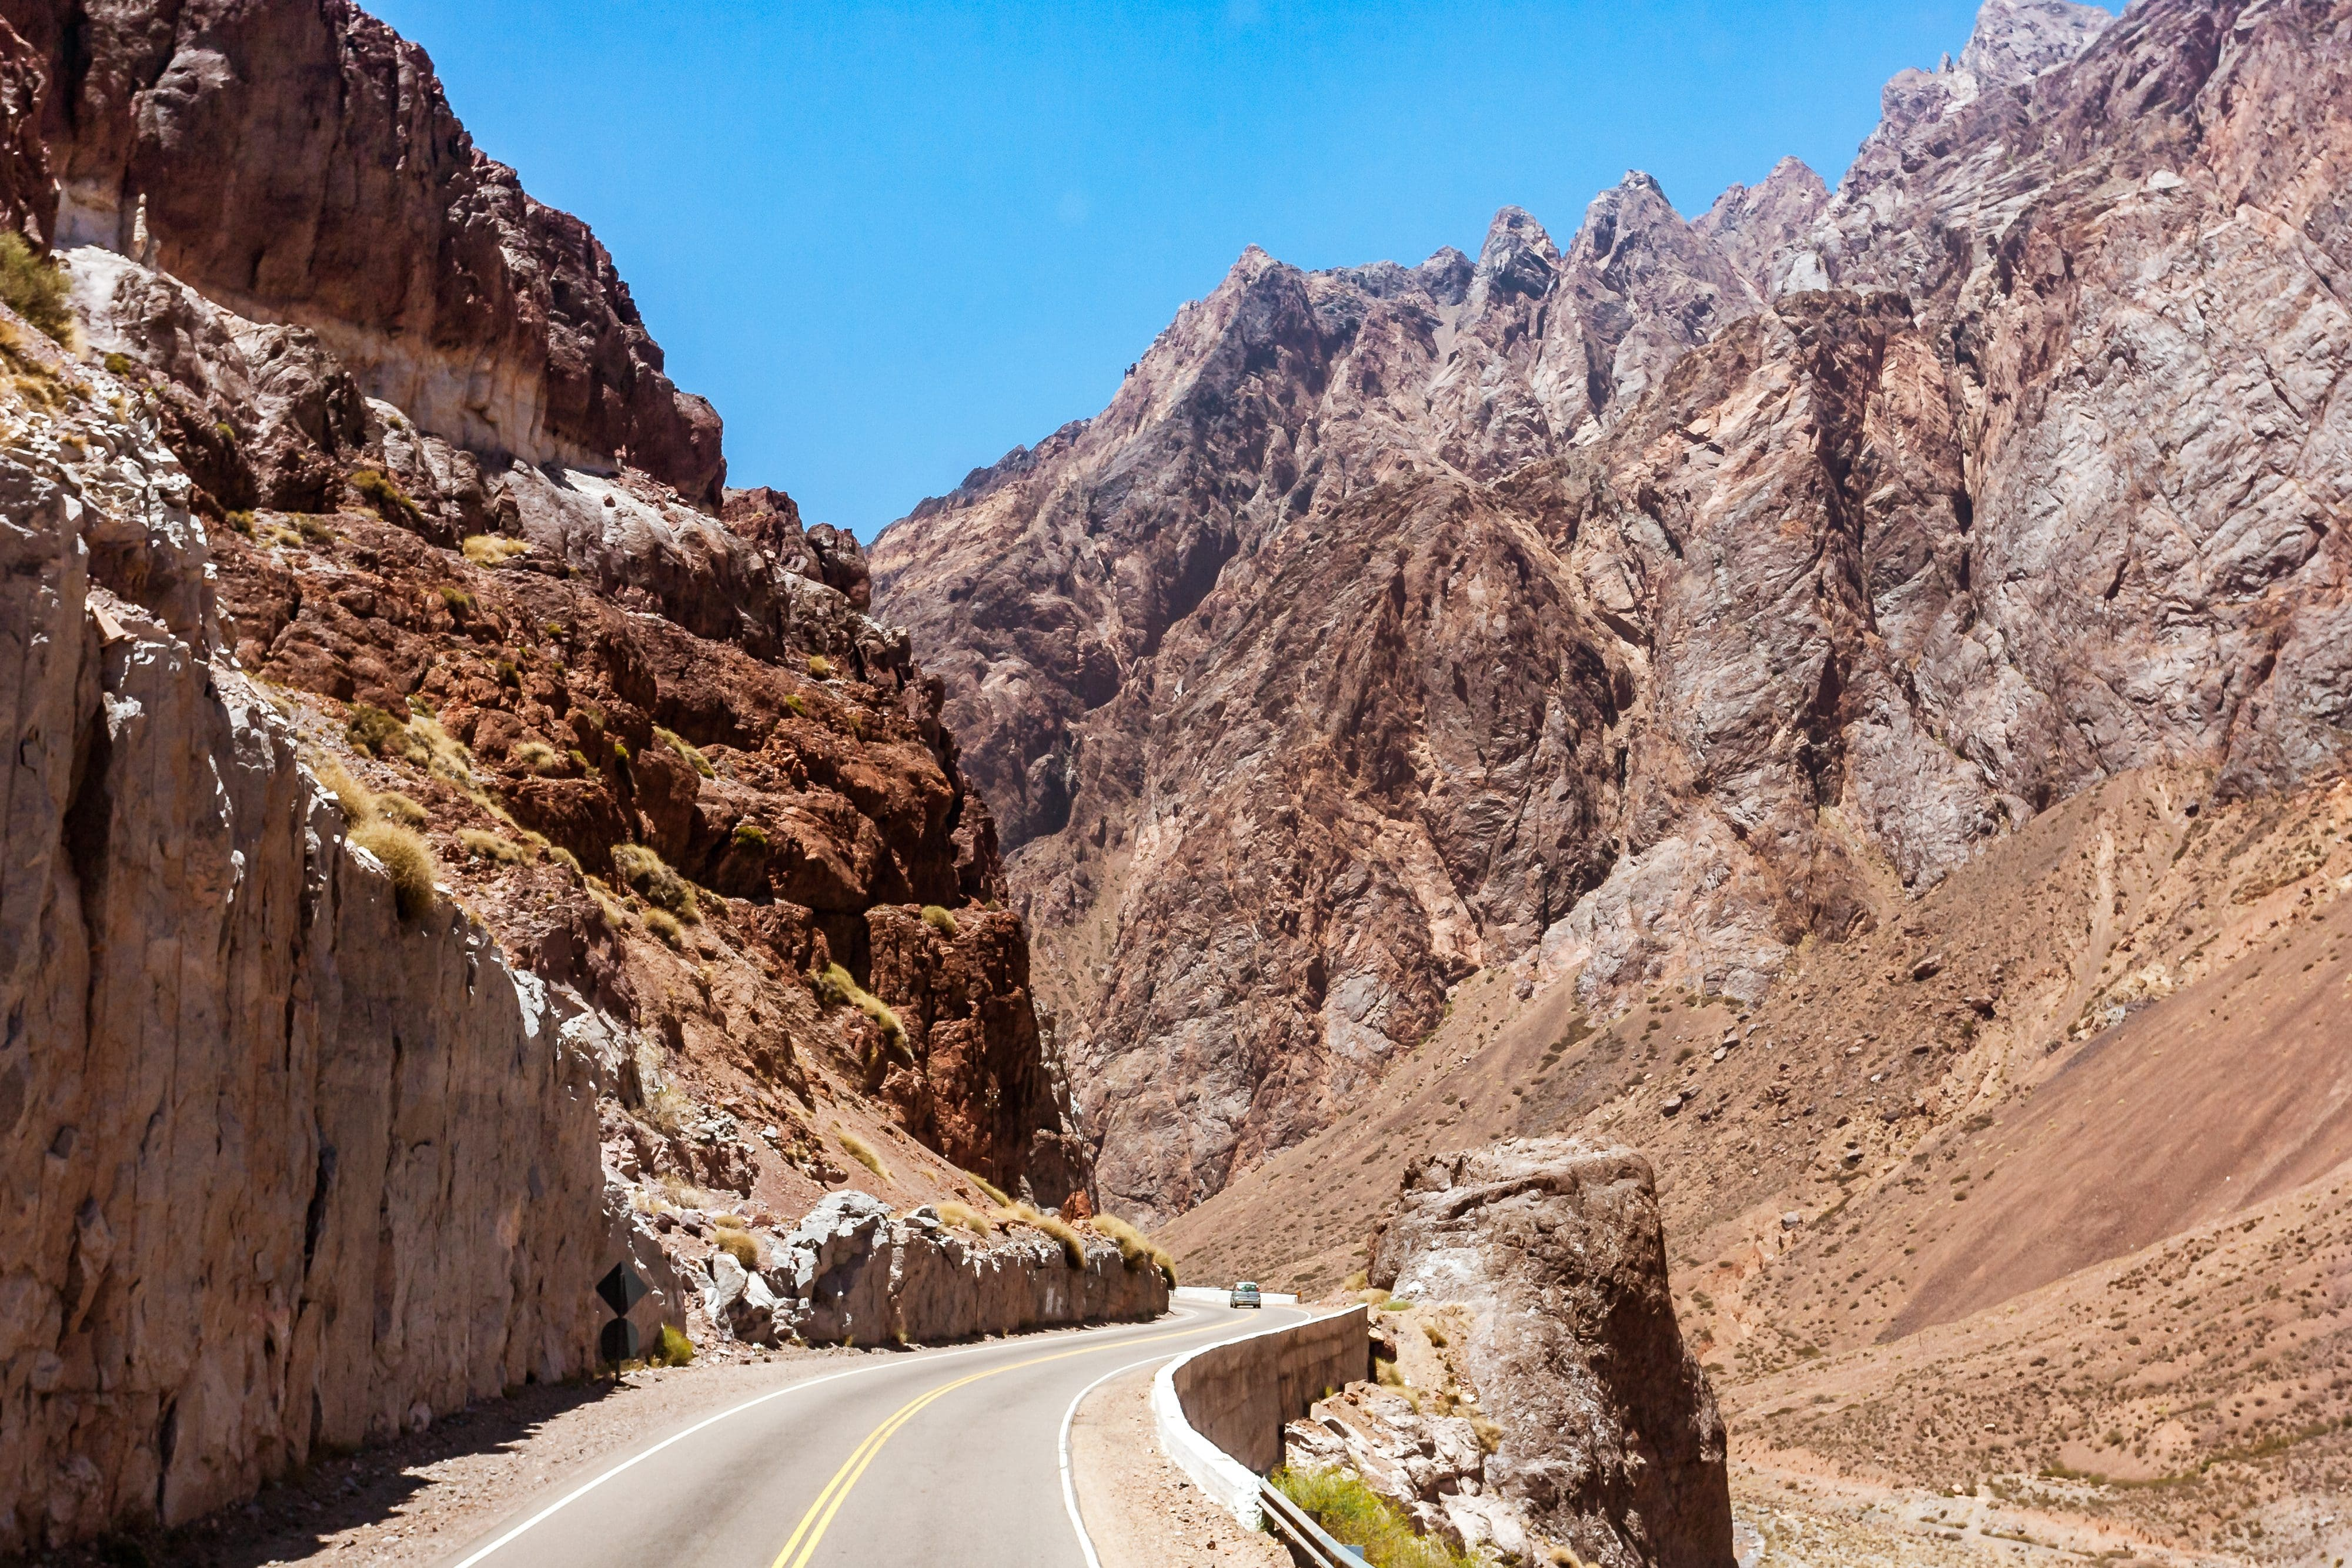 Open roads through the Andes mountains